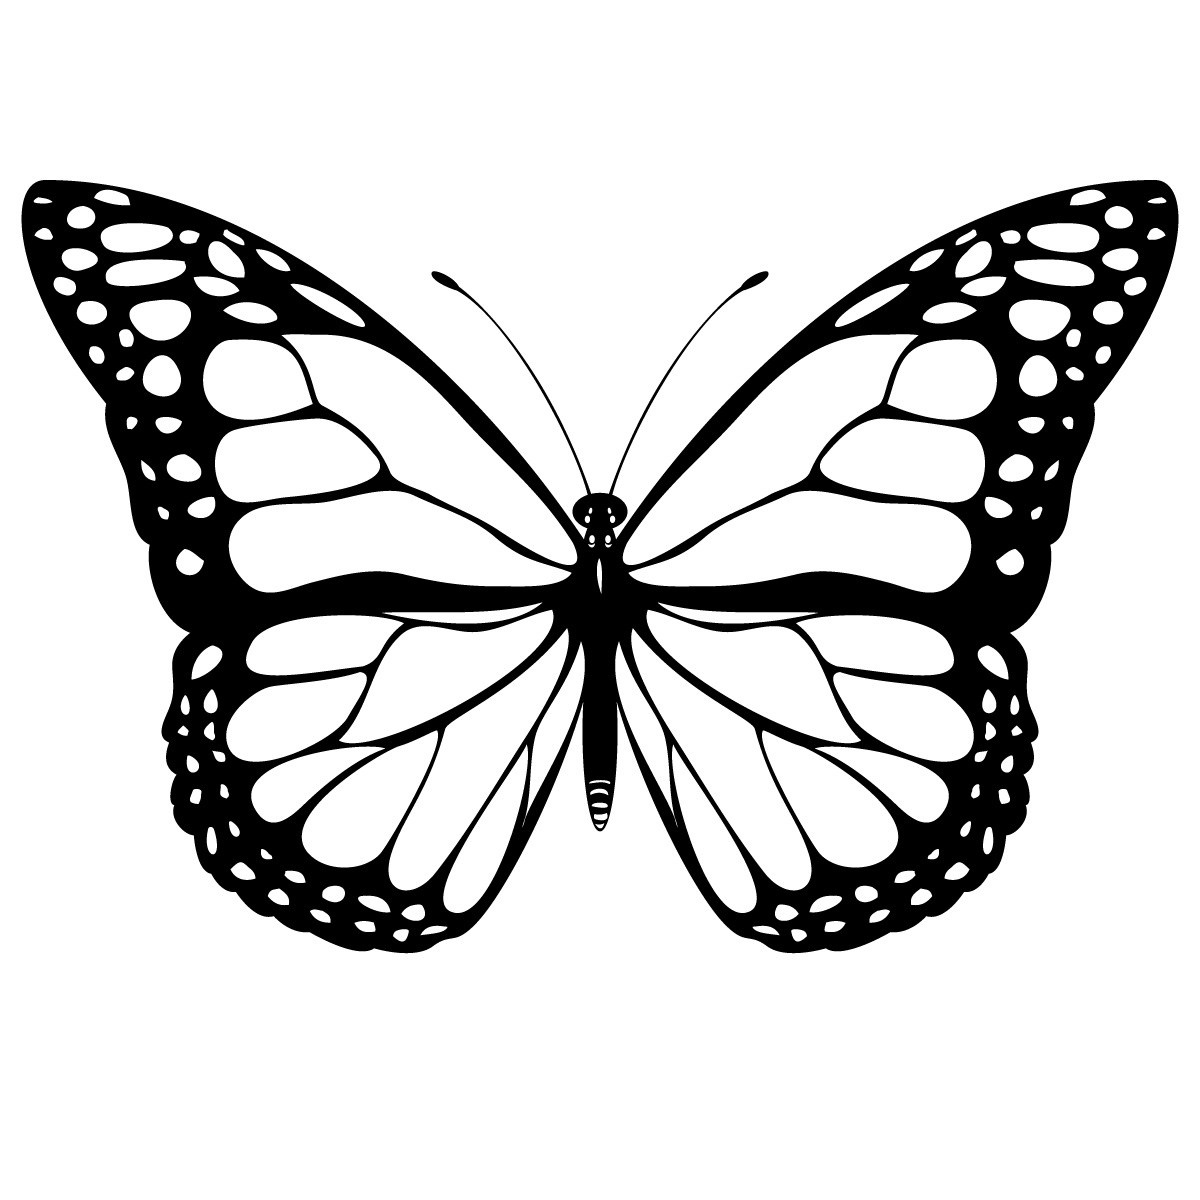 Free Printable Butterfly Coloring Pages For Kids - Butterfly Free Printable Coloring Pages